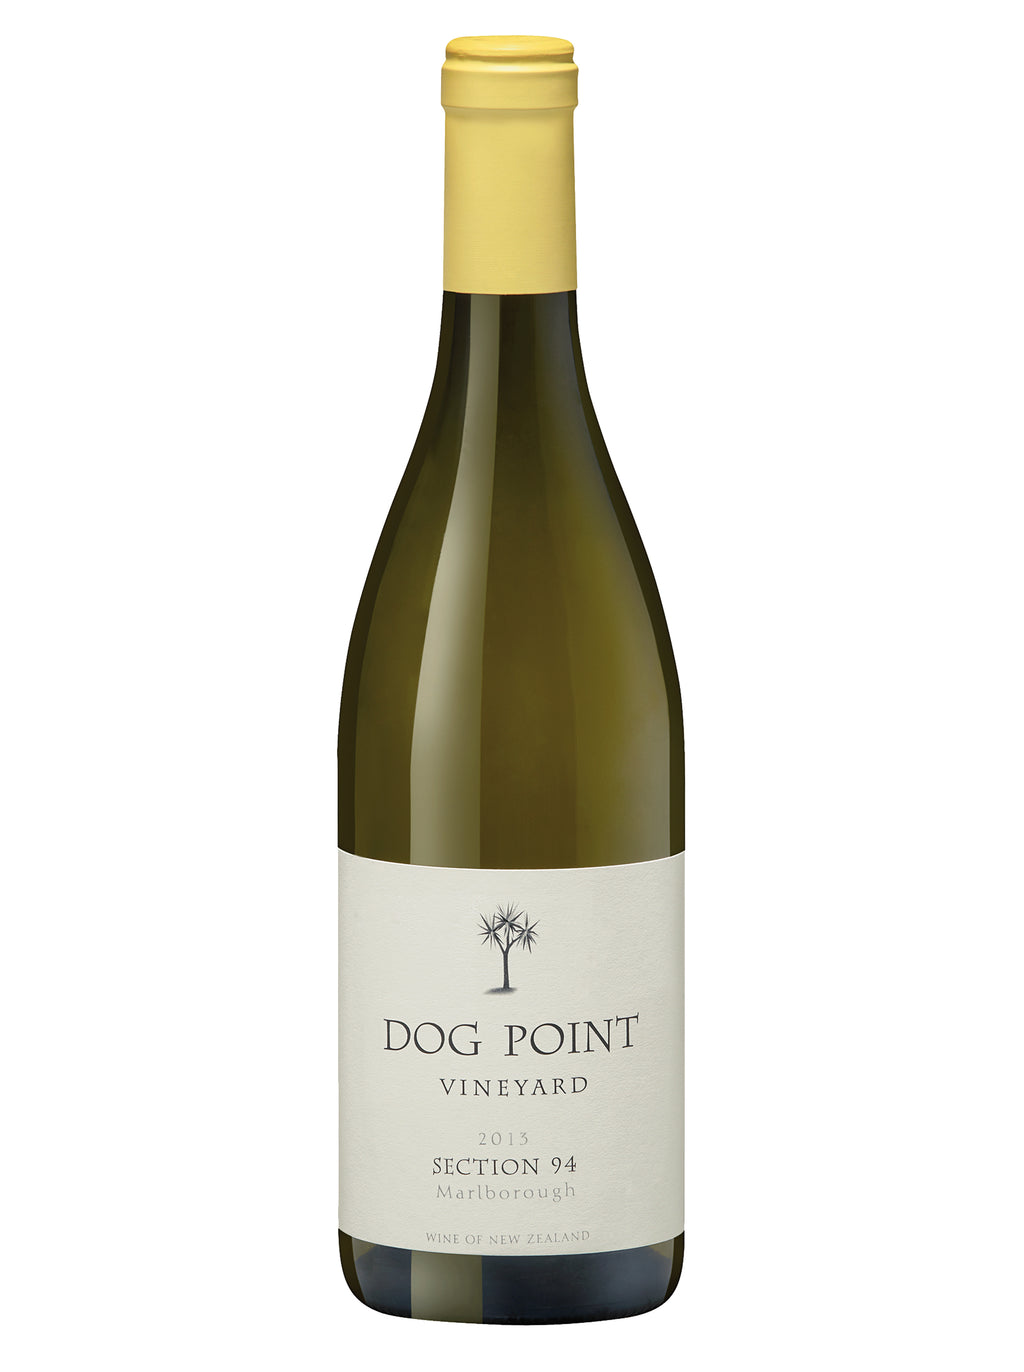 Dog Point Vineyard, Section 94, Marlborough, New Zealand Wine, New Zealand Winery, New Zealand Wine Shop, Online Wine Shop, New Zealand Wine Event, Auckland Wine Event, Winetopia, Auckland Restaurant Month